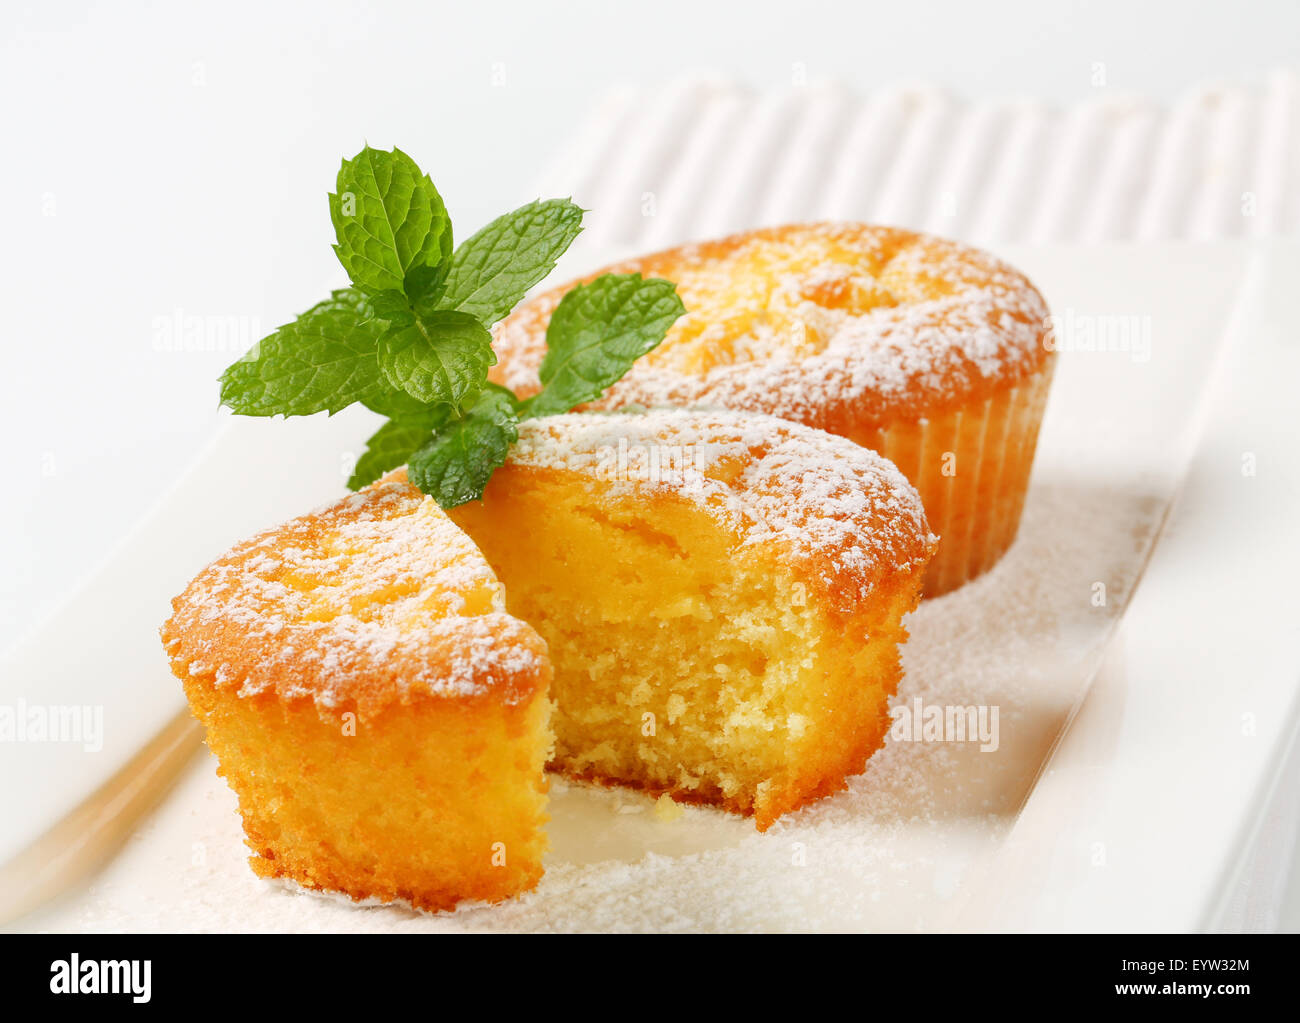 Custard filled muffins on plate - Stock Image